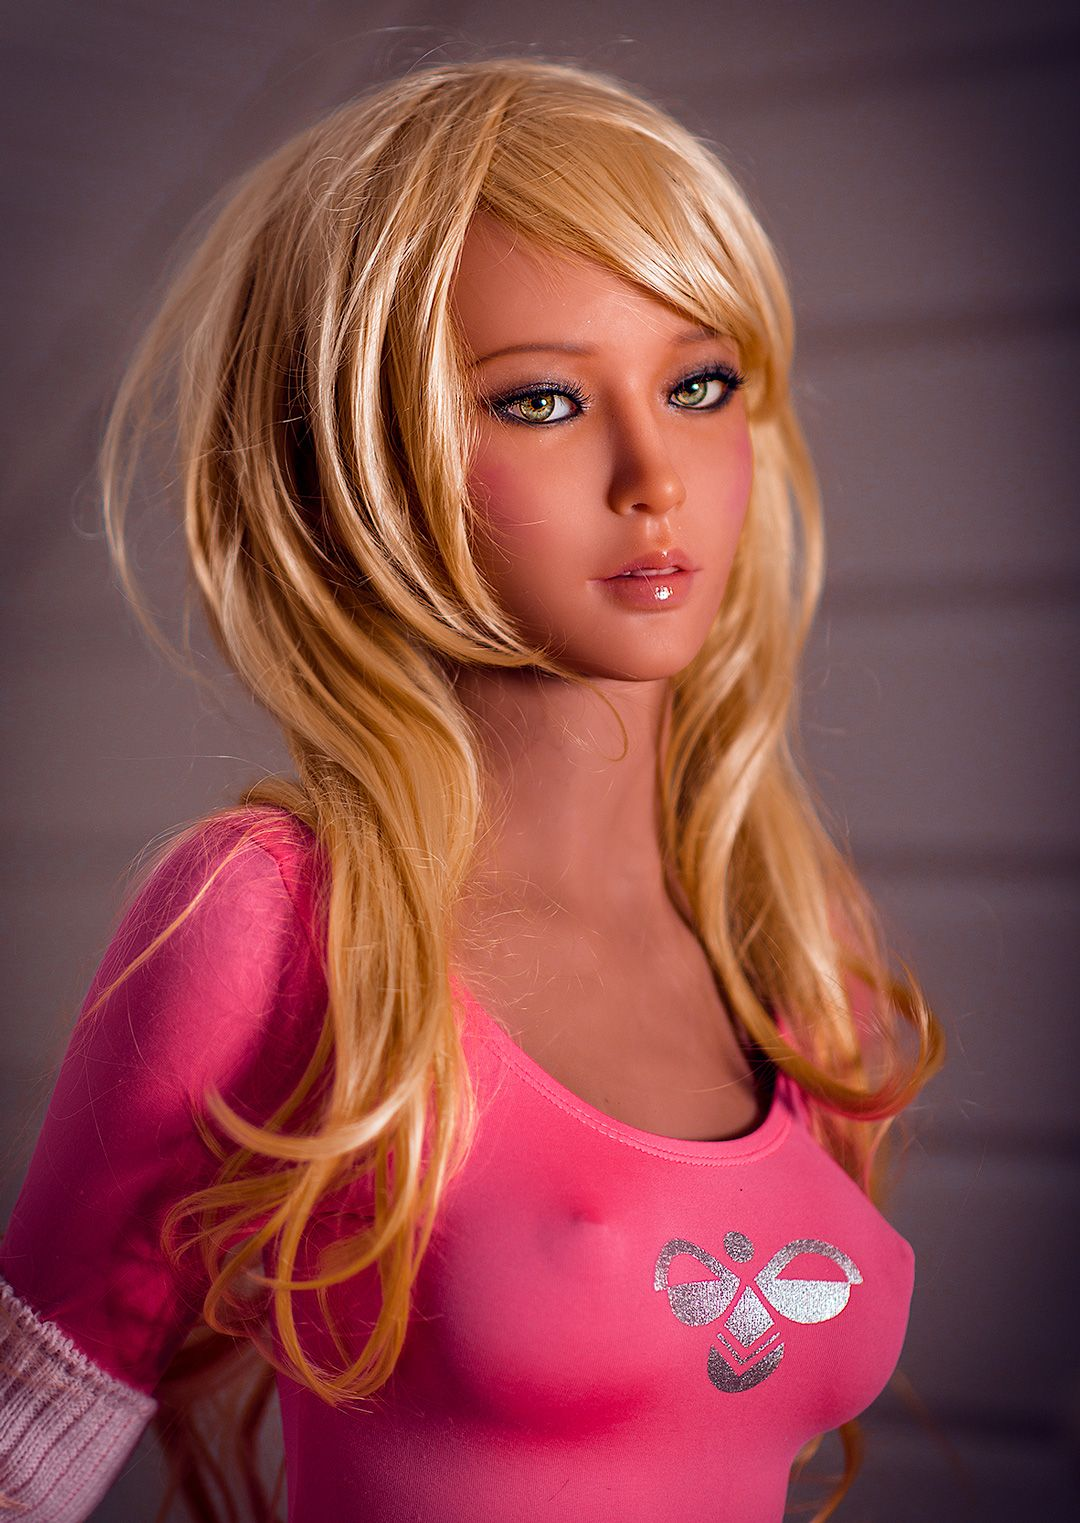 RealDoll: US firm developing sex doll that can talk back